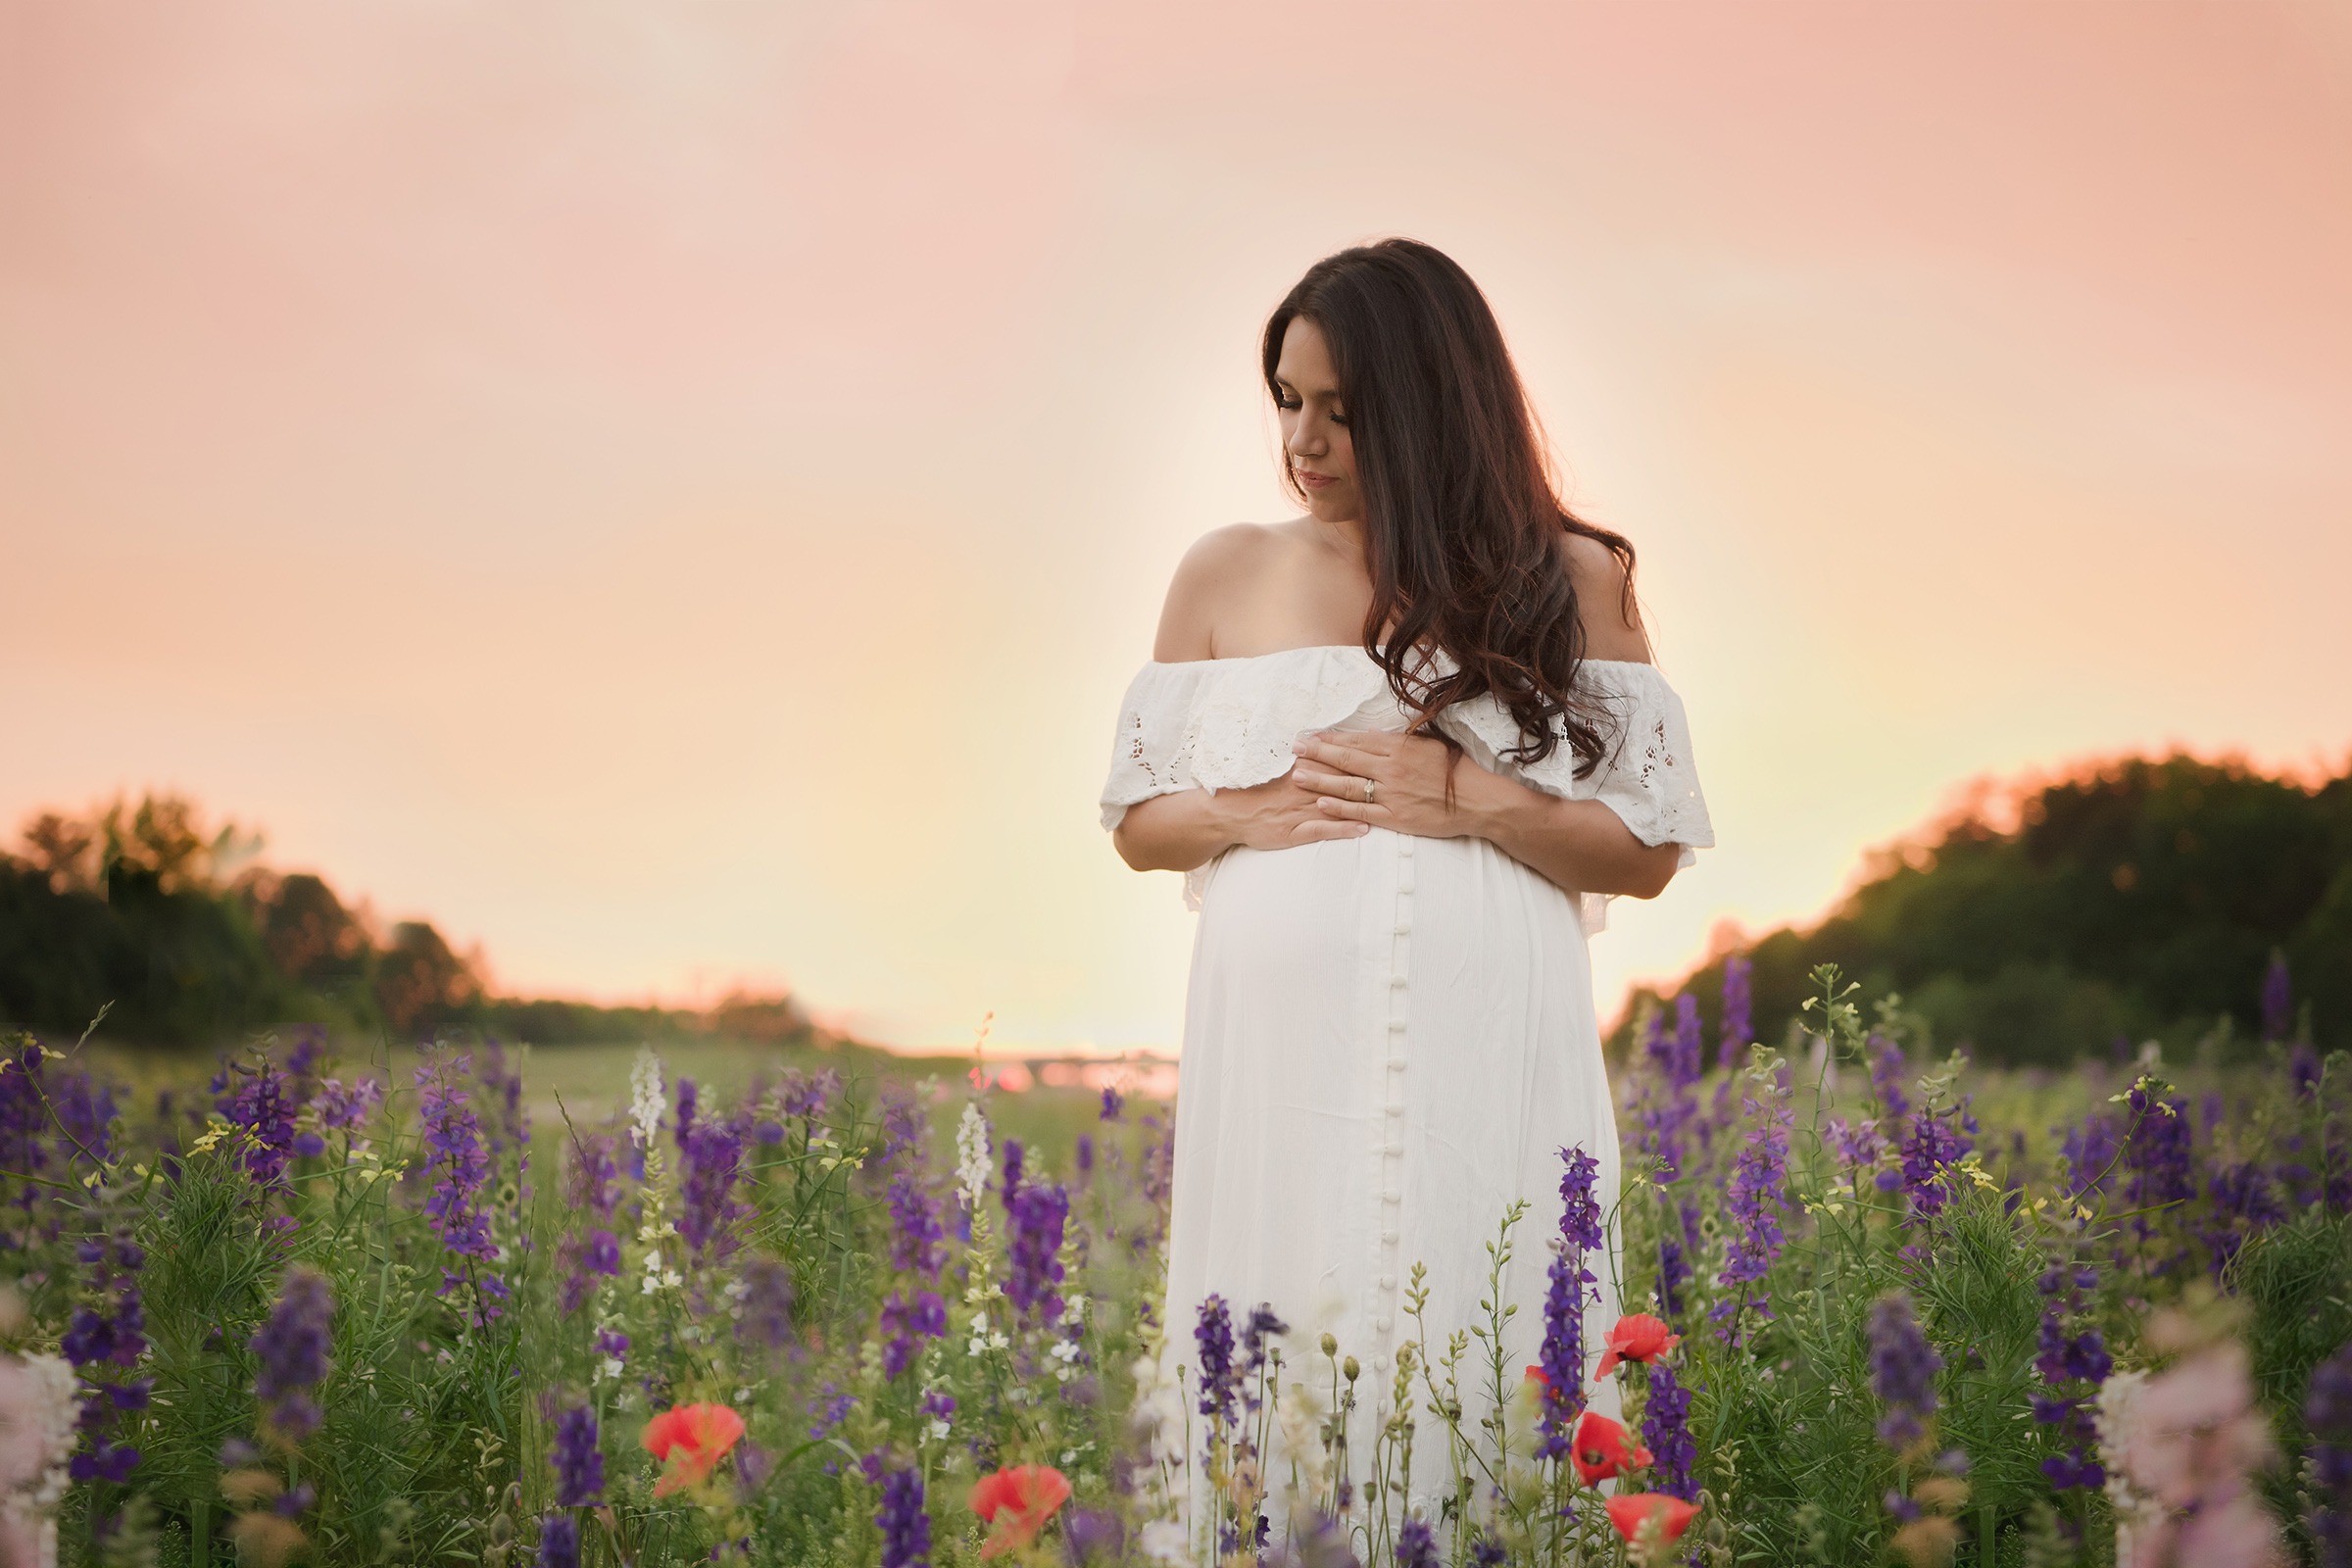 baby bump at sunset in a field of flowers